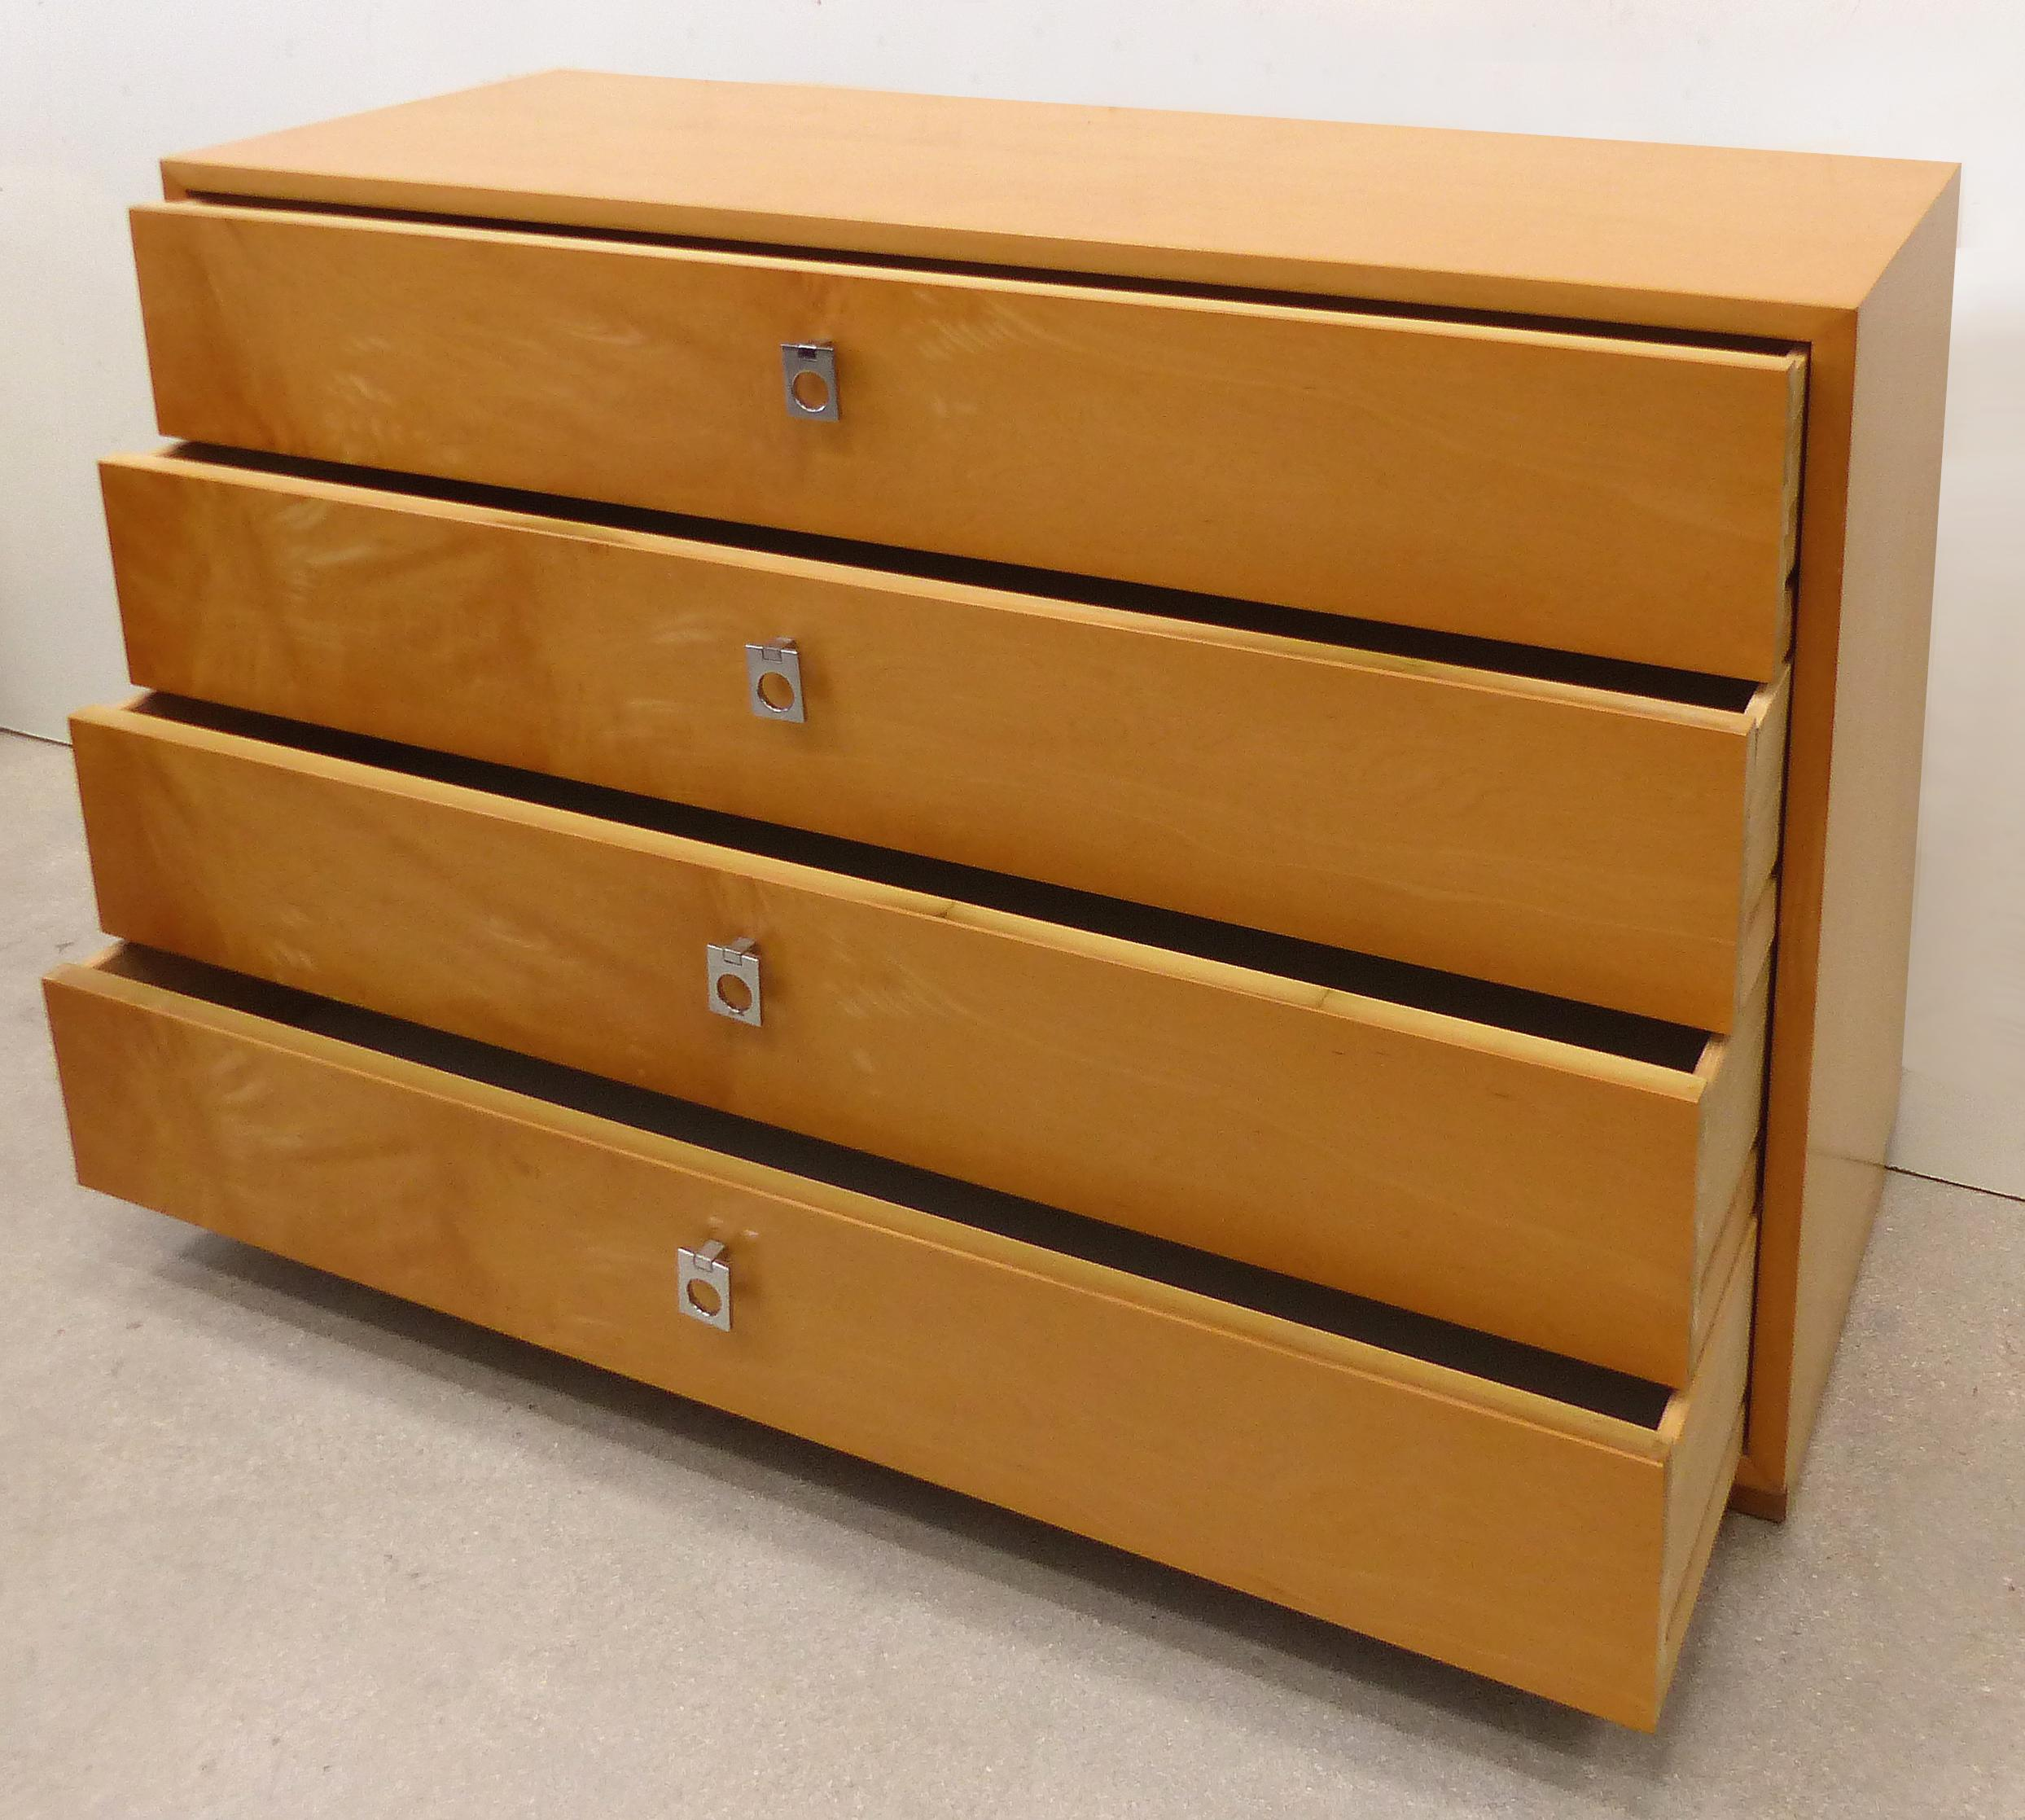 Etonnant Mid Century Maple Dresser By Jack Cartwright For Founders Furniture   Image  2 Of 8